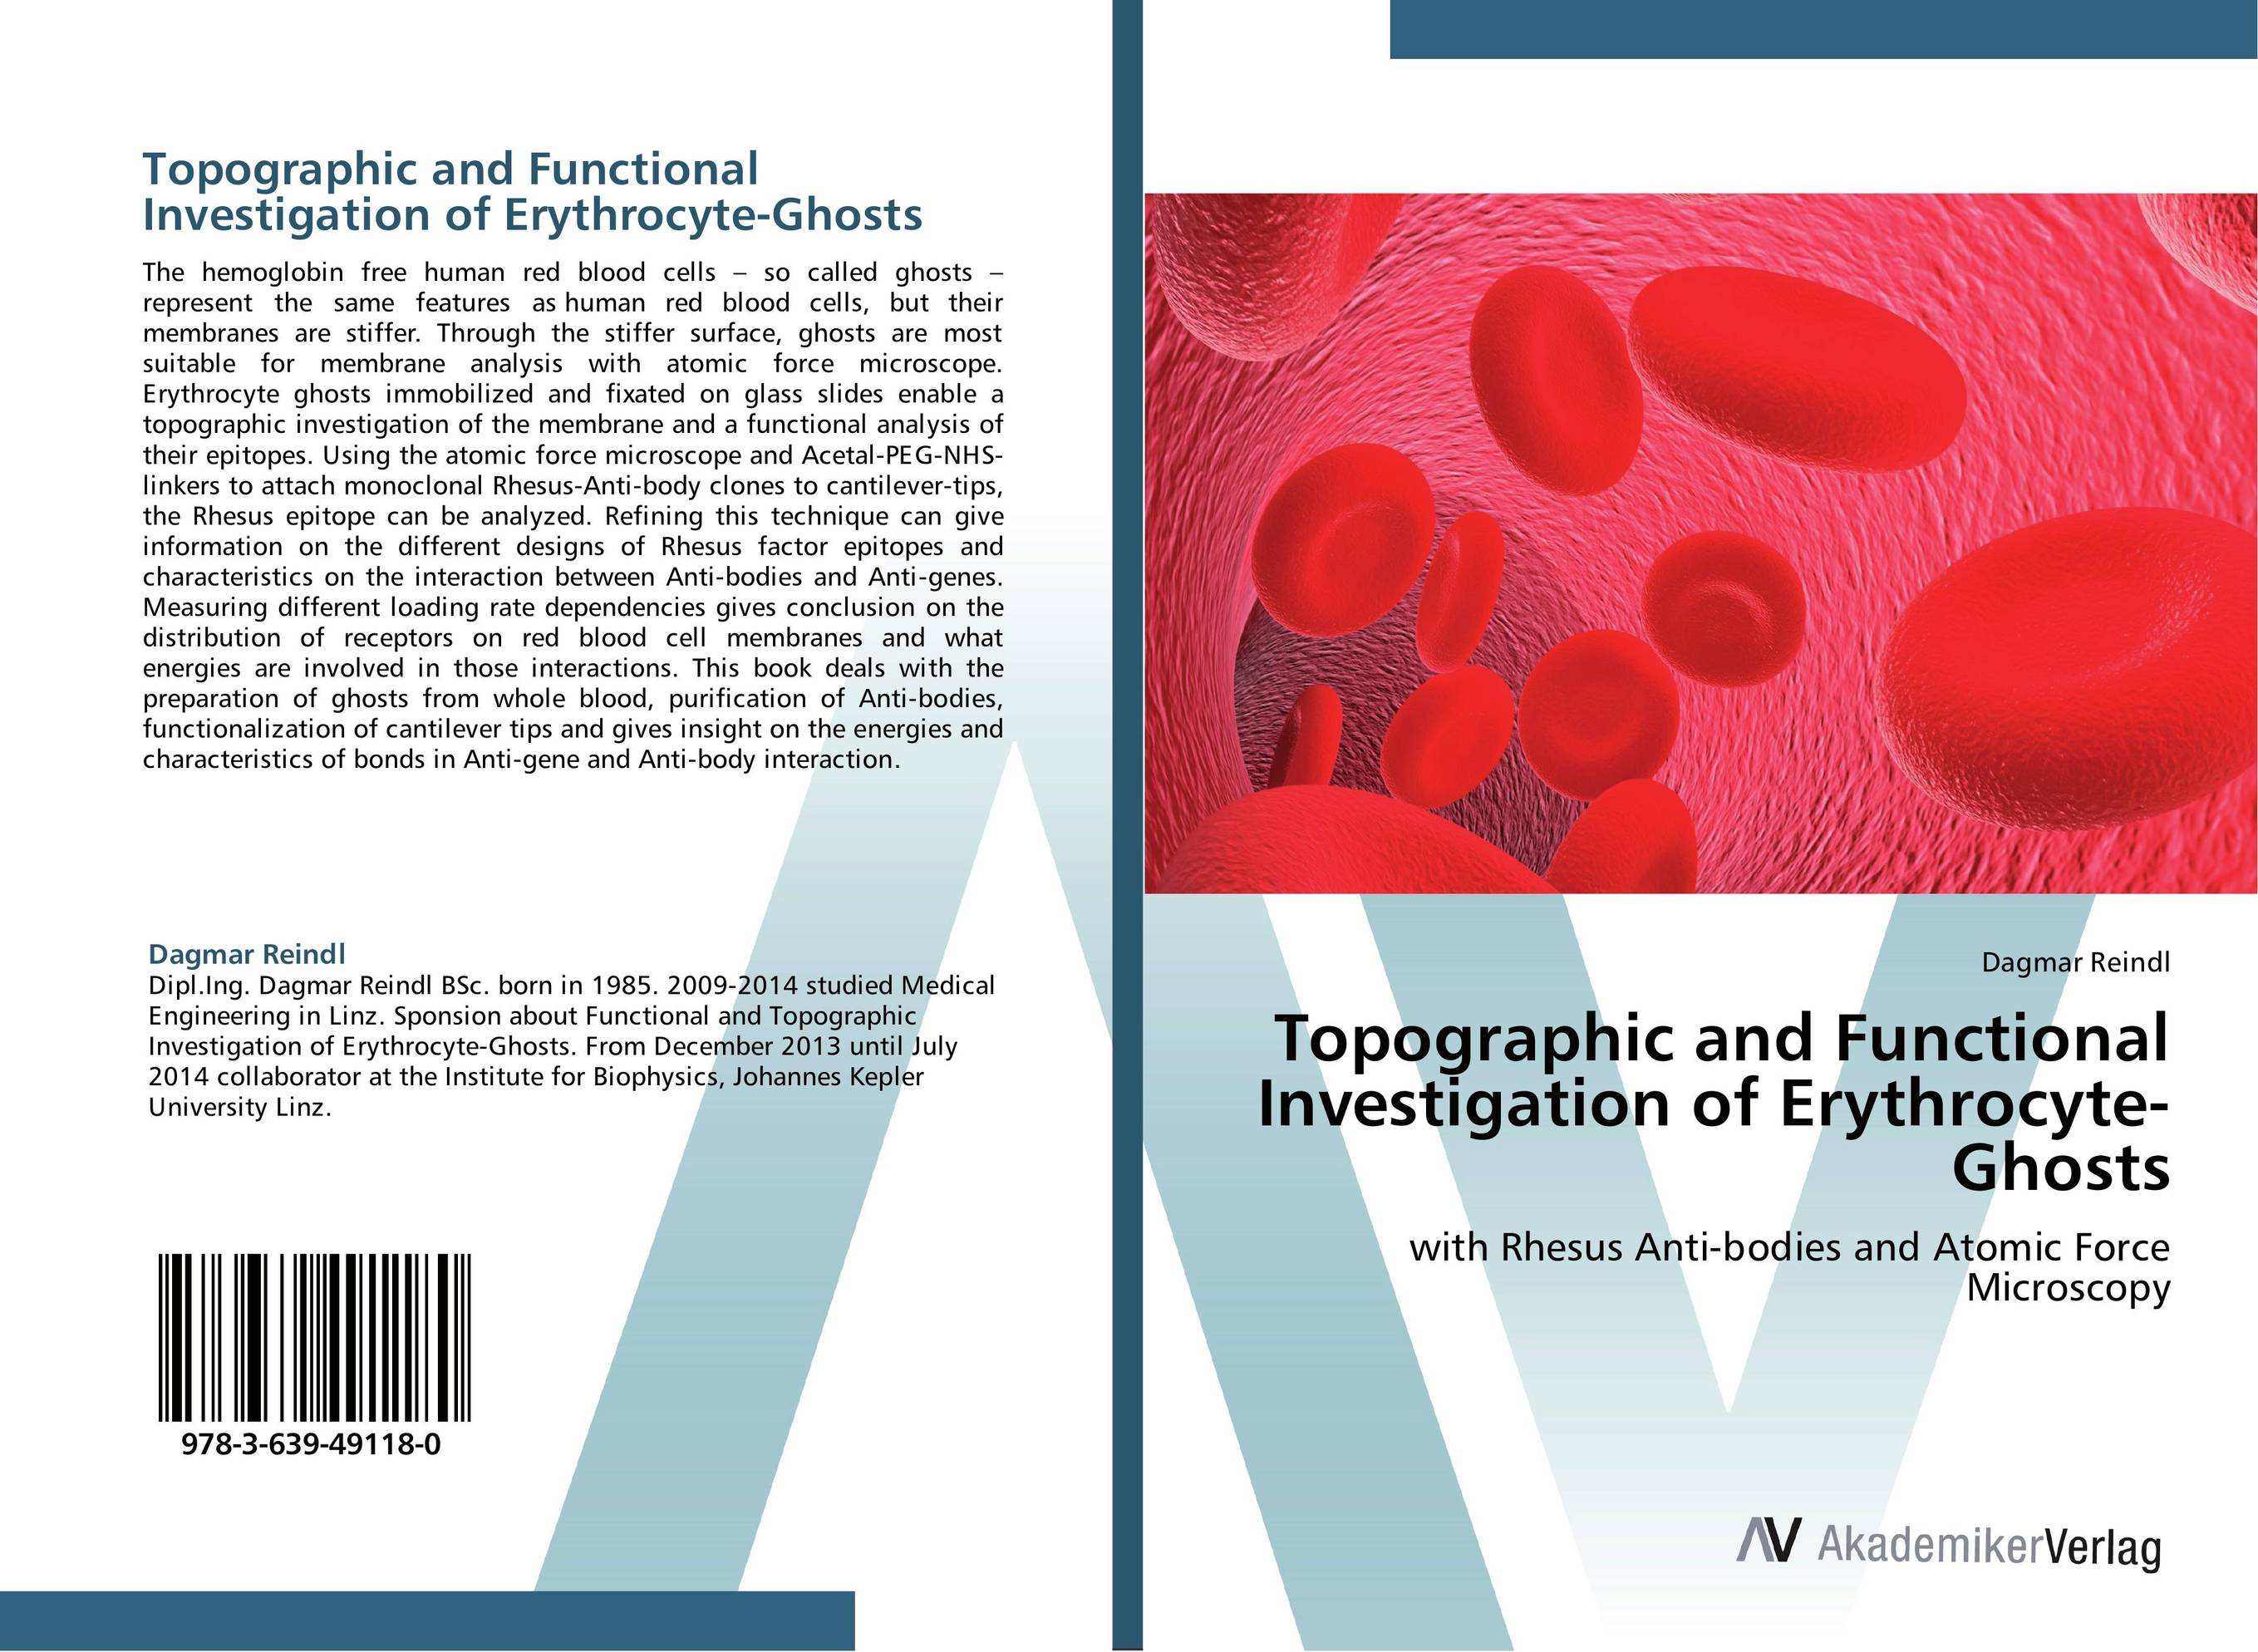 Topographic and Functional Investigation of Erythrocyte-Ghosts new epitome of human red blood cell destruction